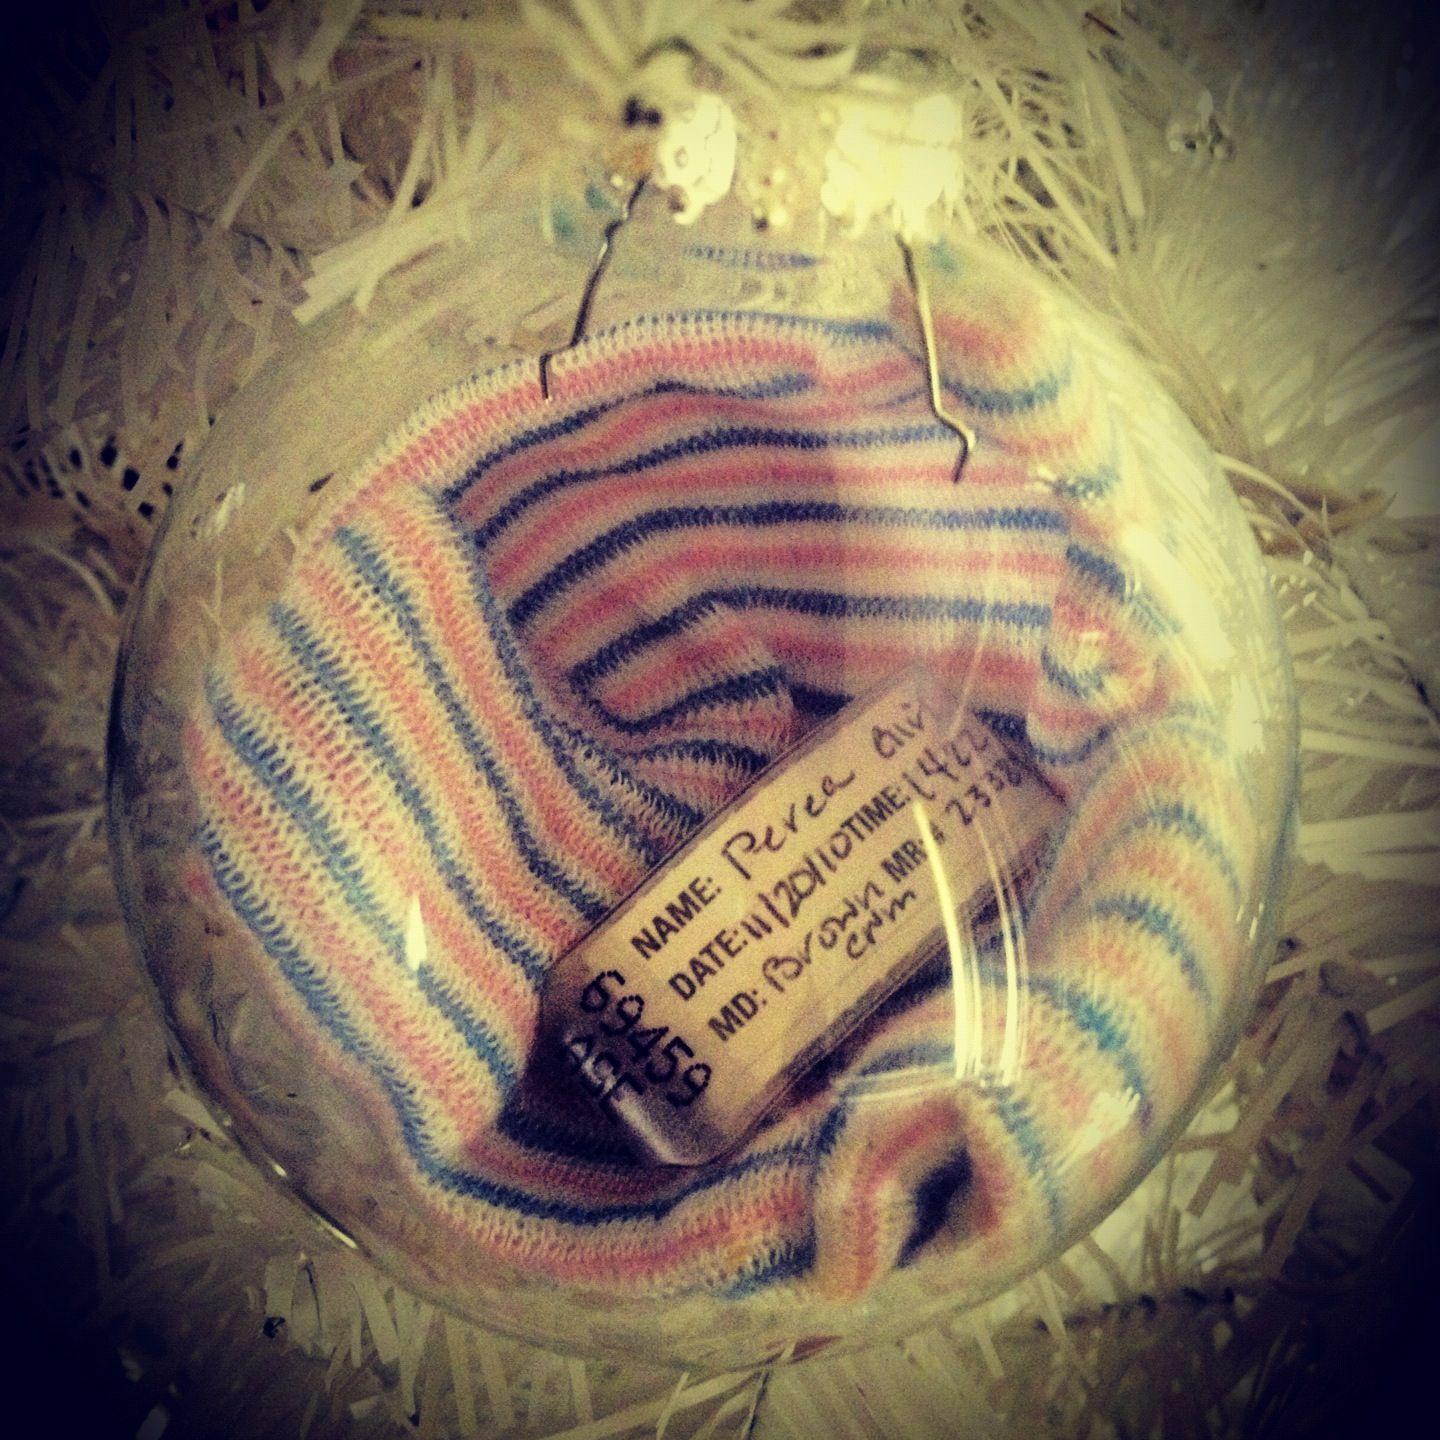 Baby Beanie & Bracelet From Hospital Placed Inside A Large Glass Ornament  From Michael's Craft Store